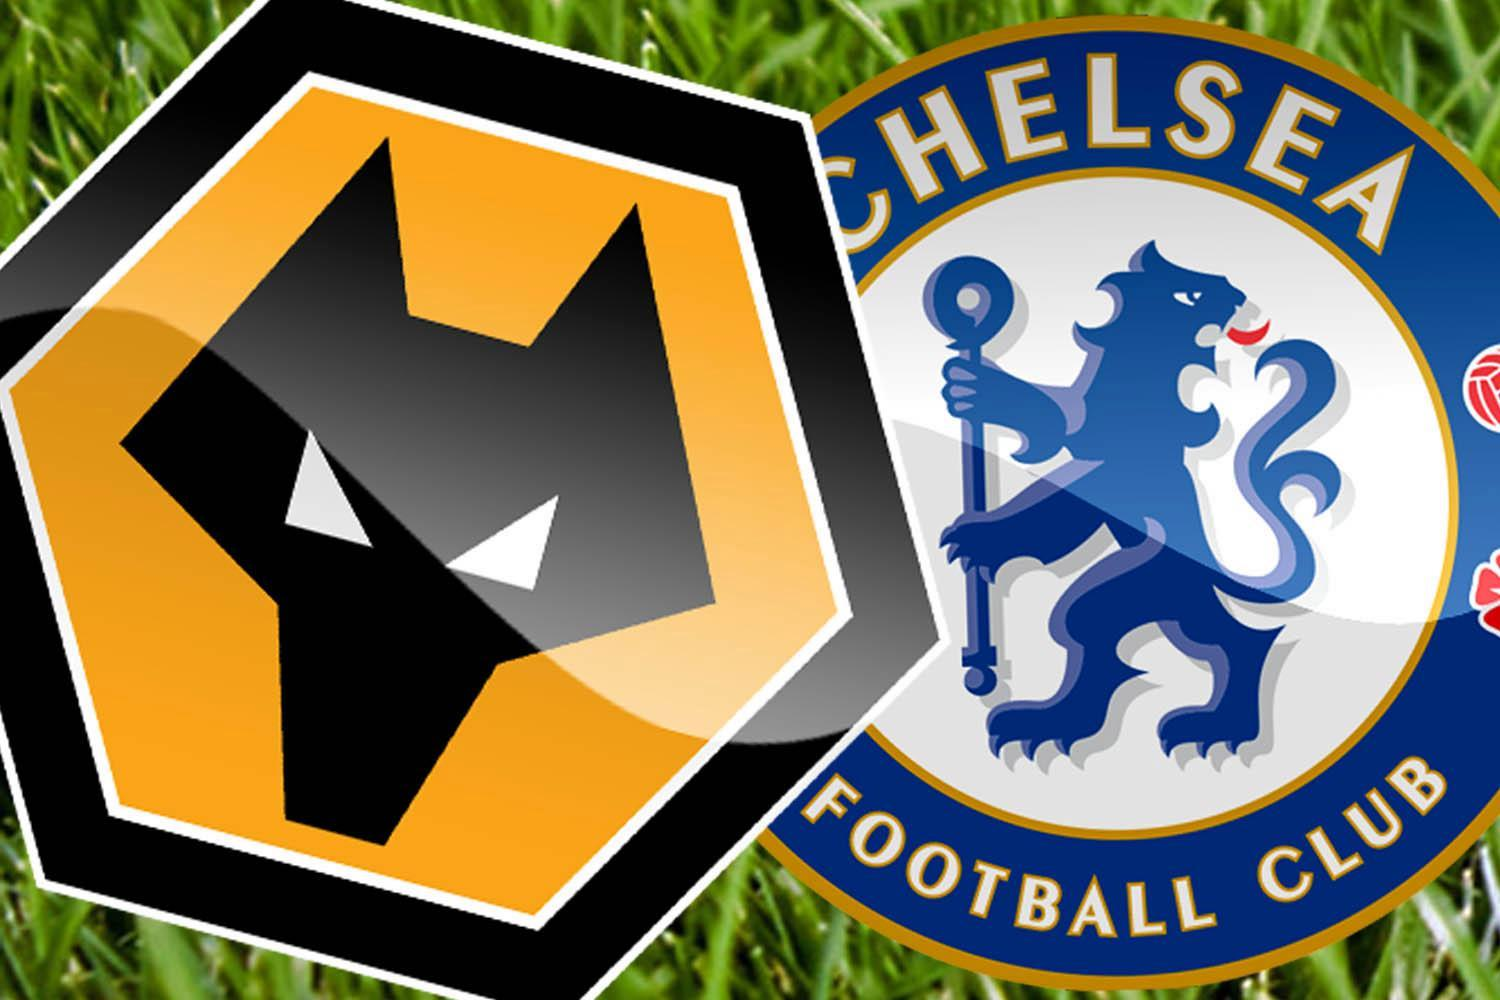 Wolves vs Chelsea LIVE SCORE: Latest updates and commentary for the Premier League tie